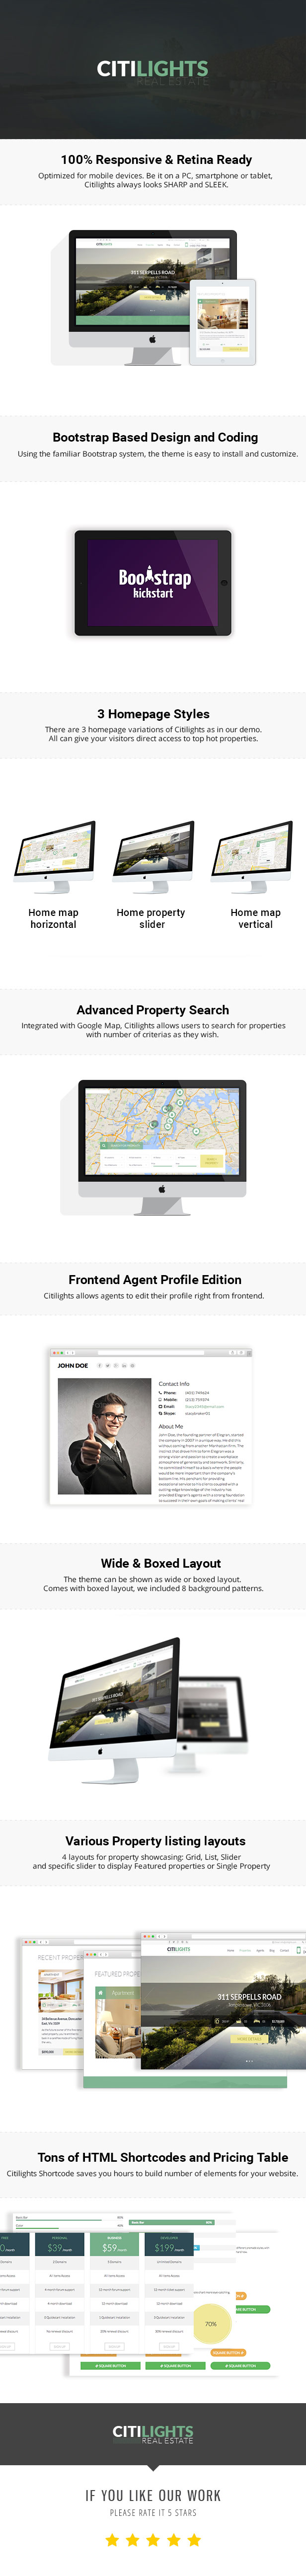 citilights real estate drupal theme features